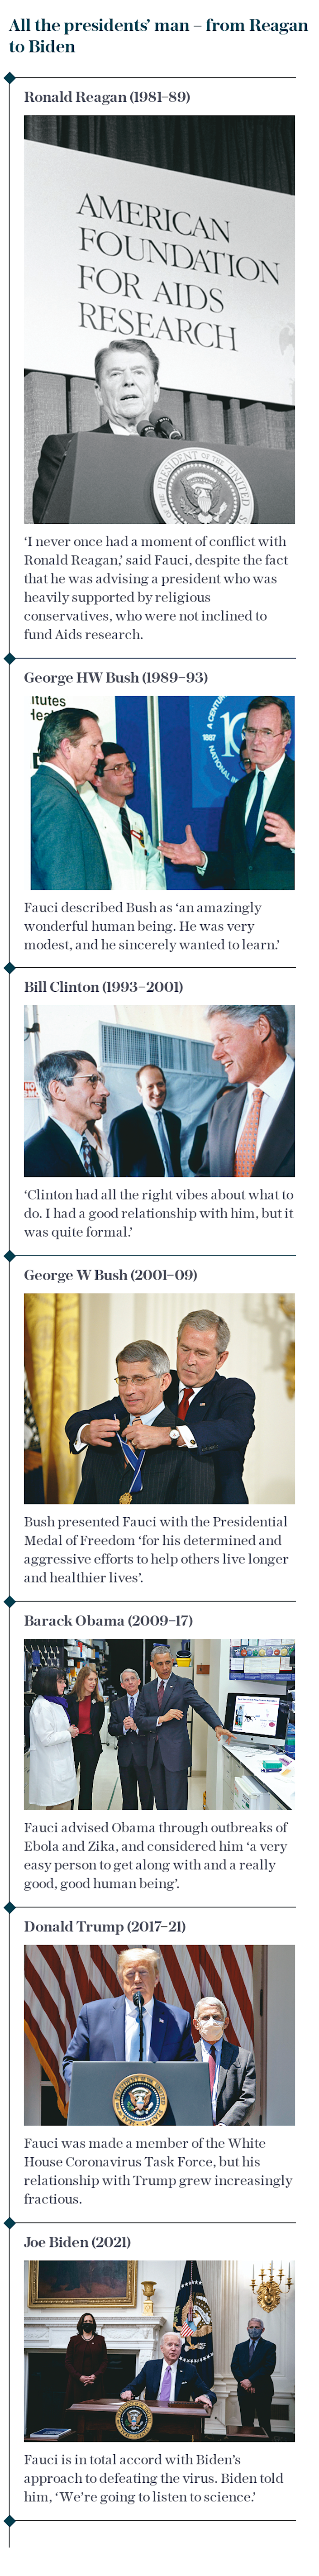 All the presidents' man – from Reagan to Biden